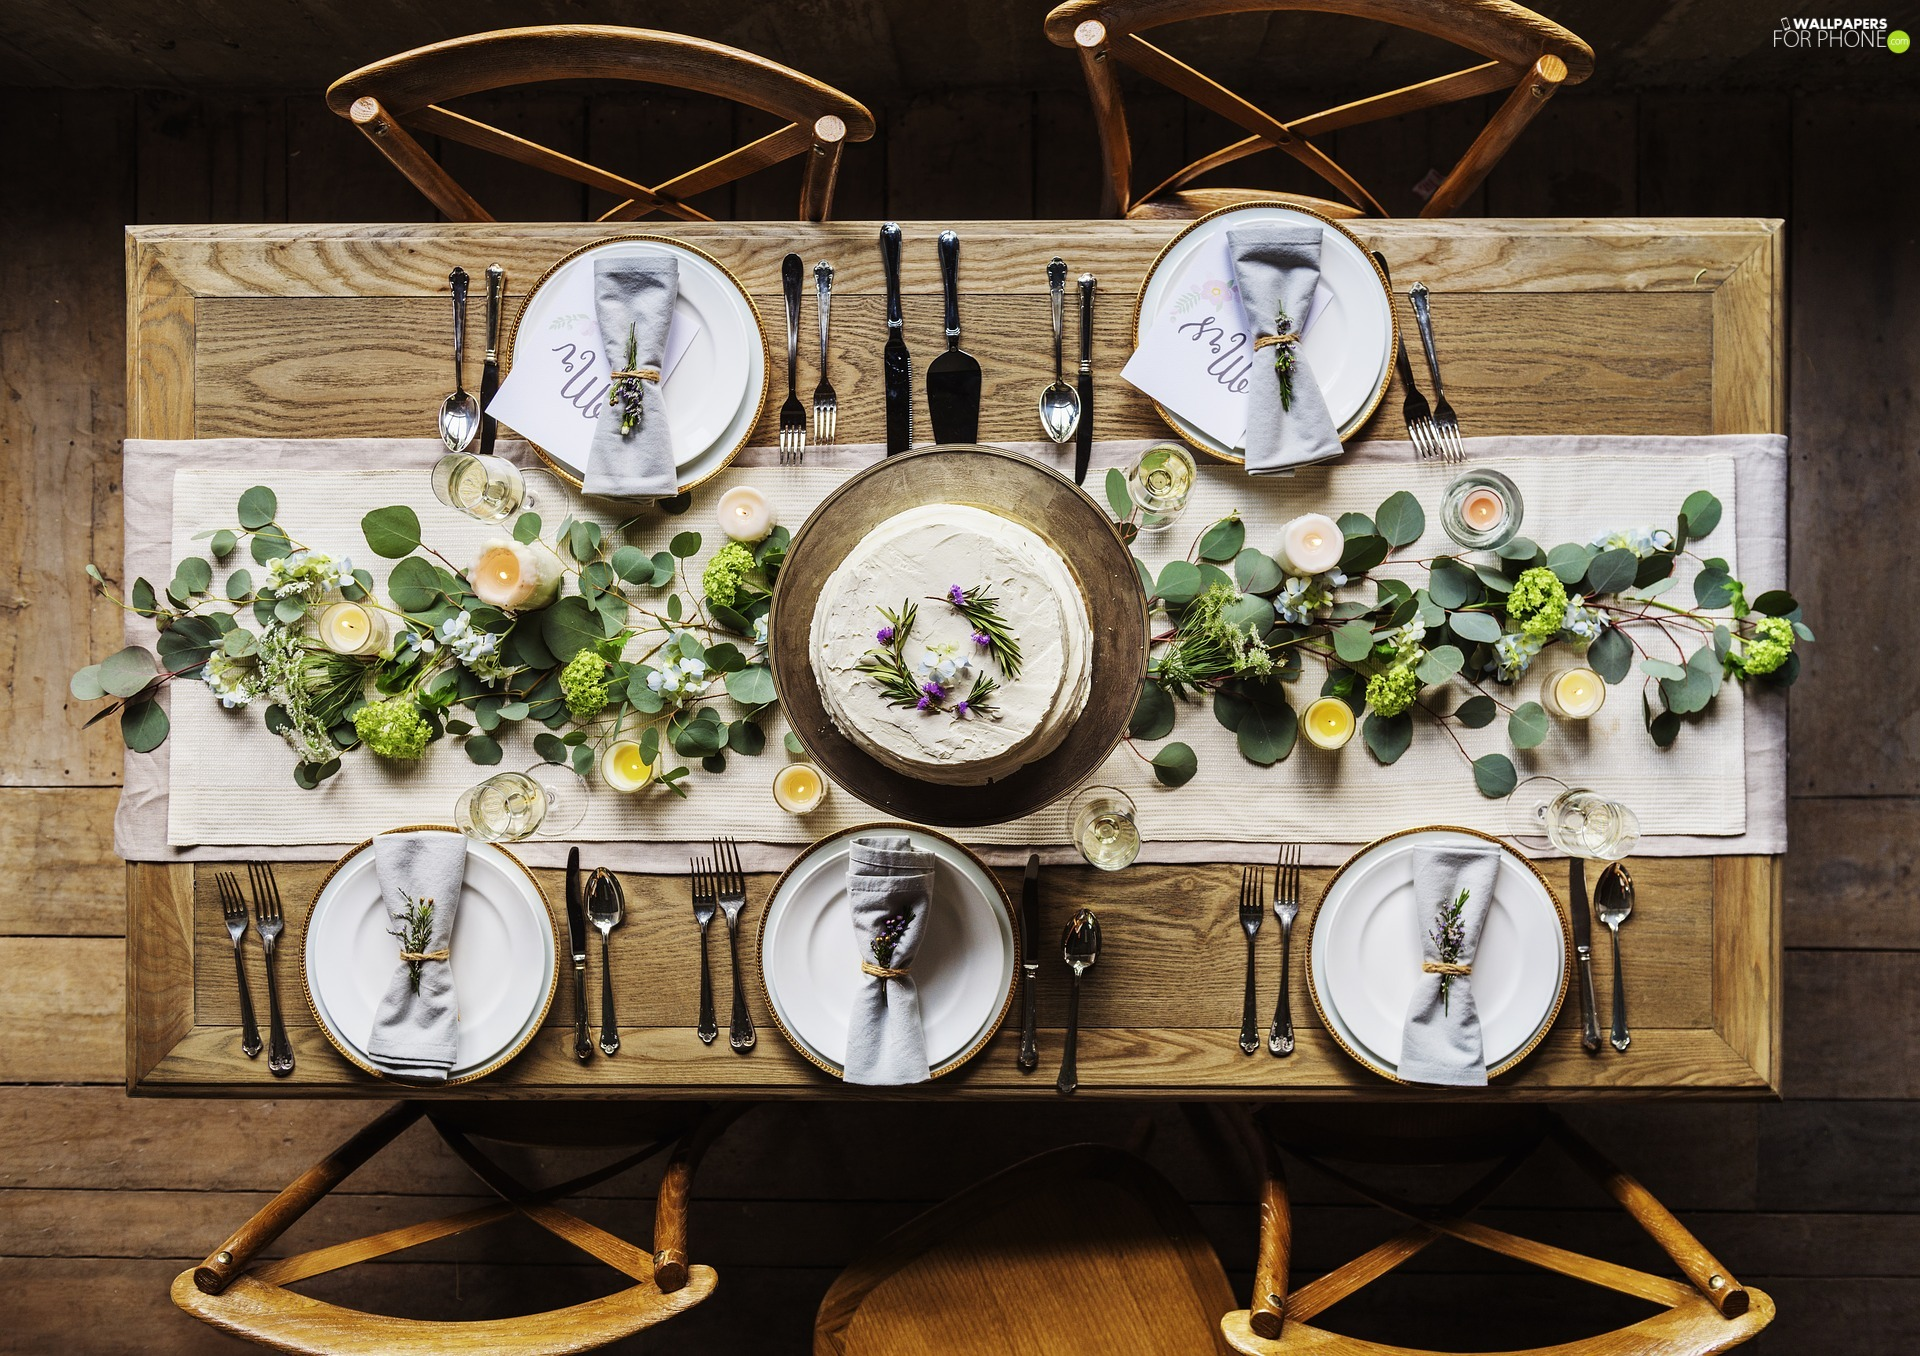 Plates, cutlery, decoration, table, Table